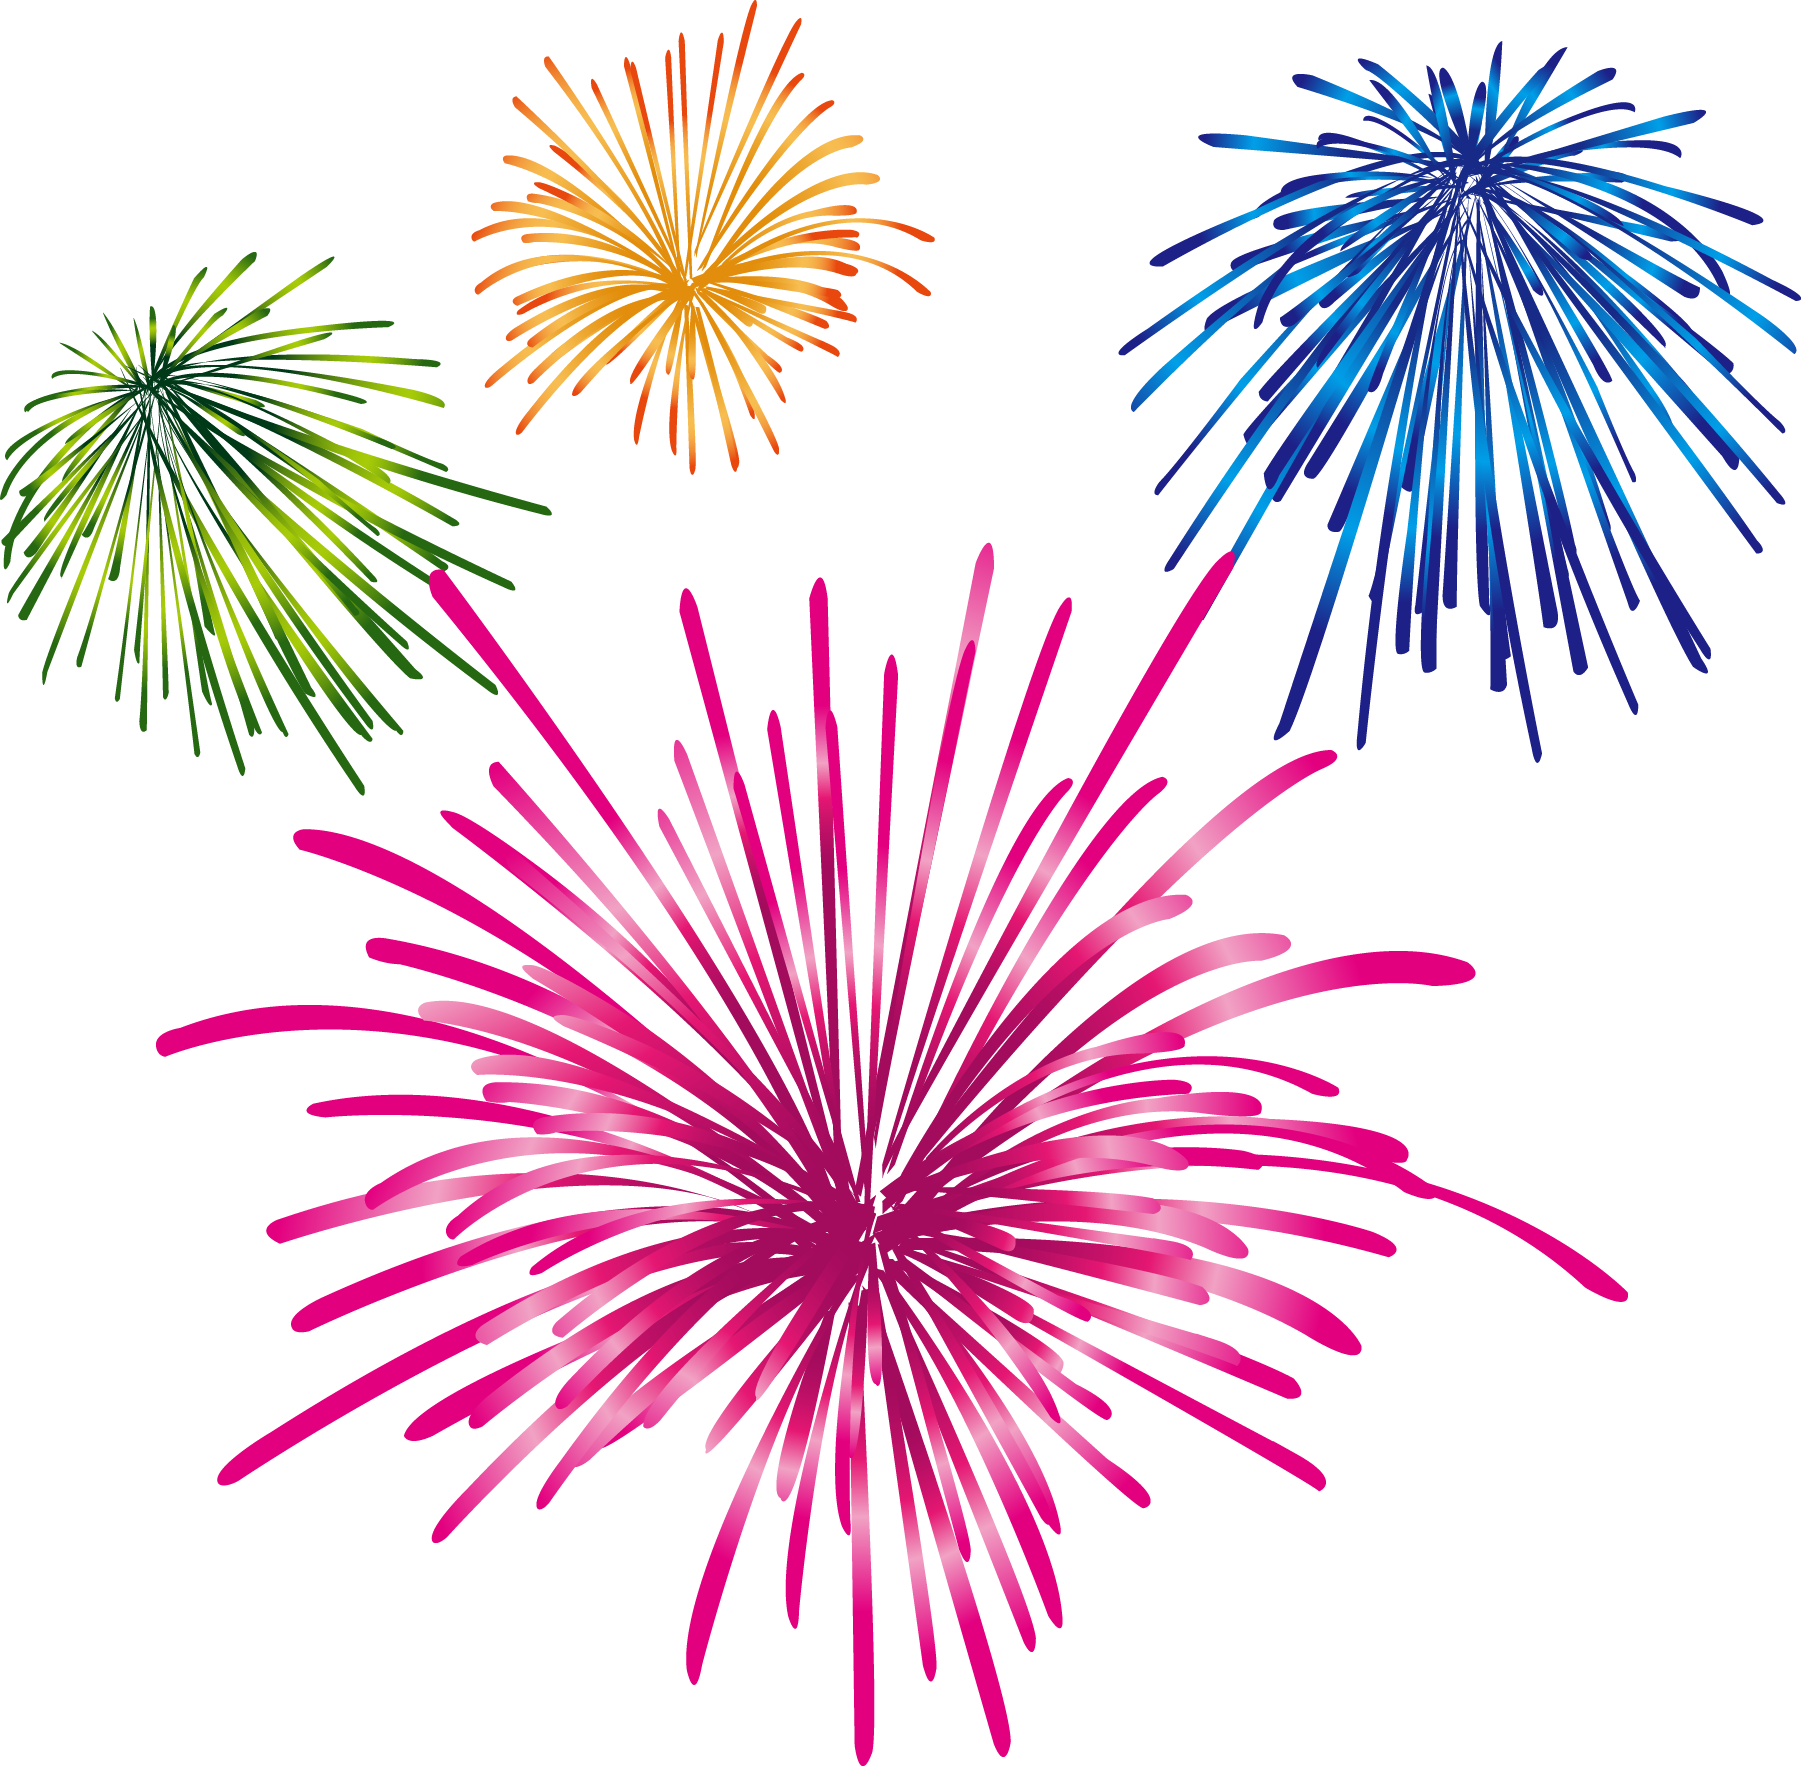 Clipart fireworks watercolor. Cartoon colorful transprent png